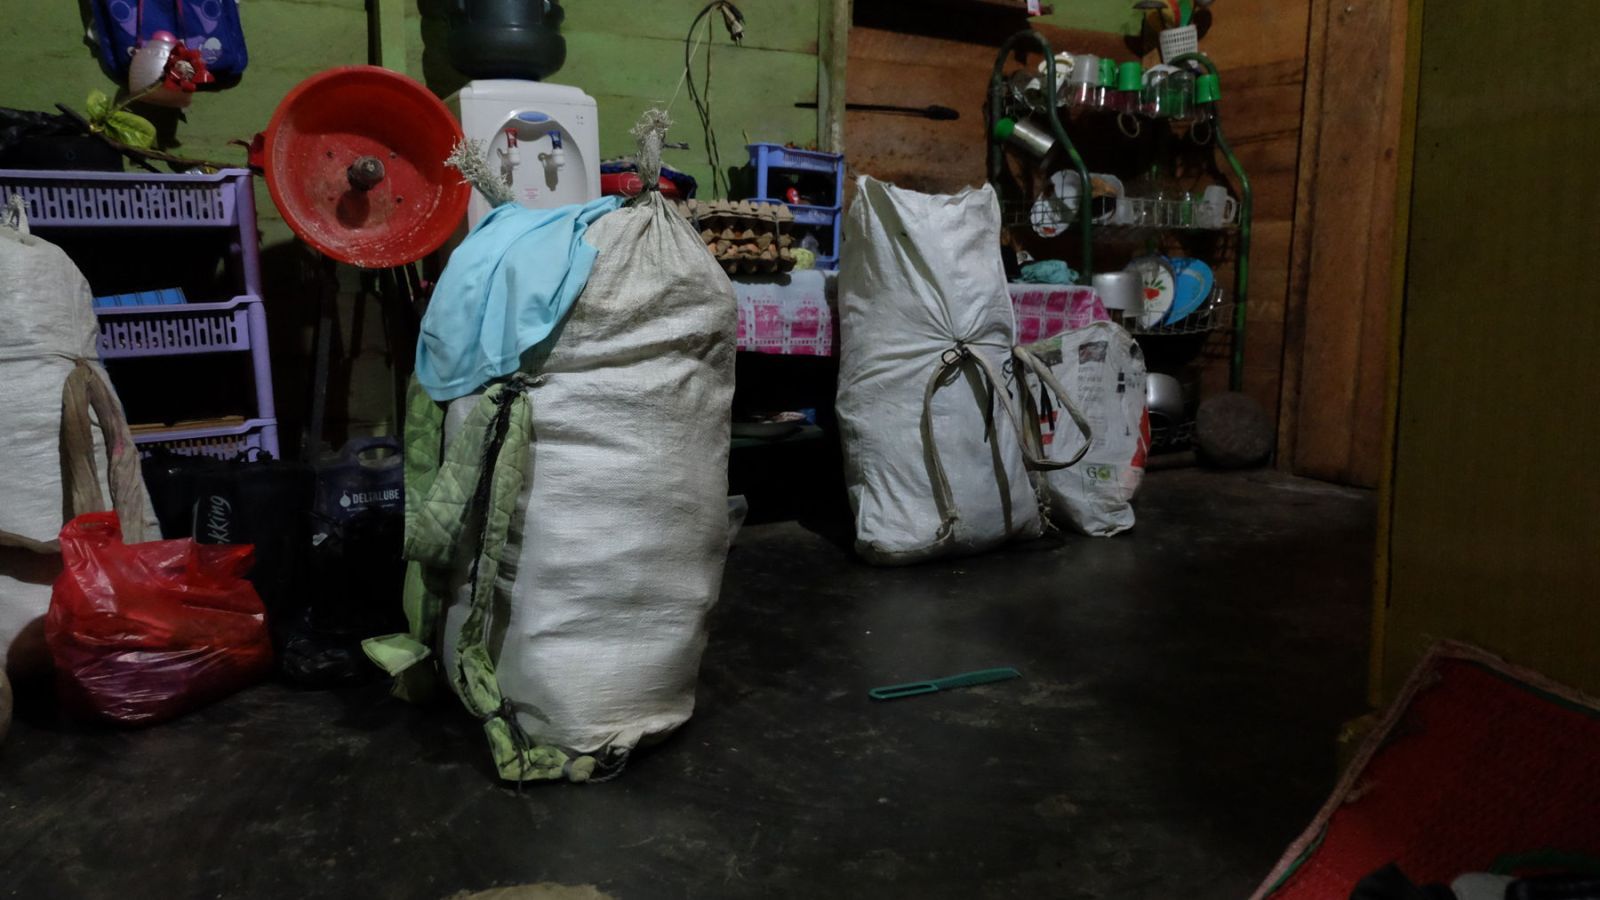 a photo of the rice bags filled with supplies for the hike in gunung leuser national park.